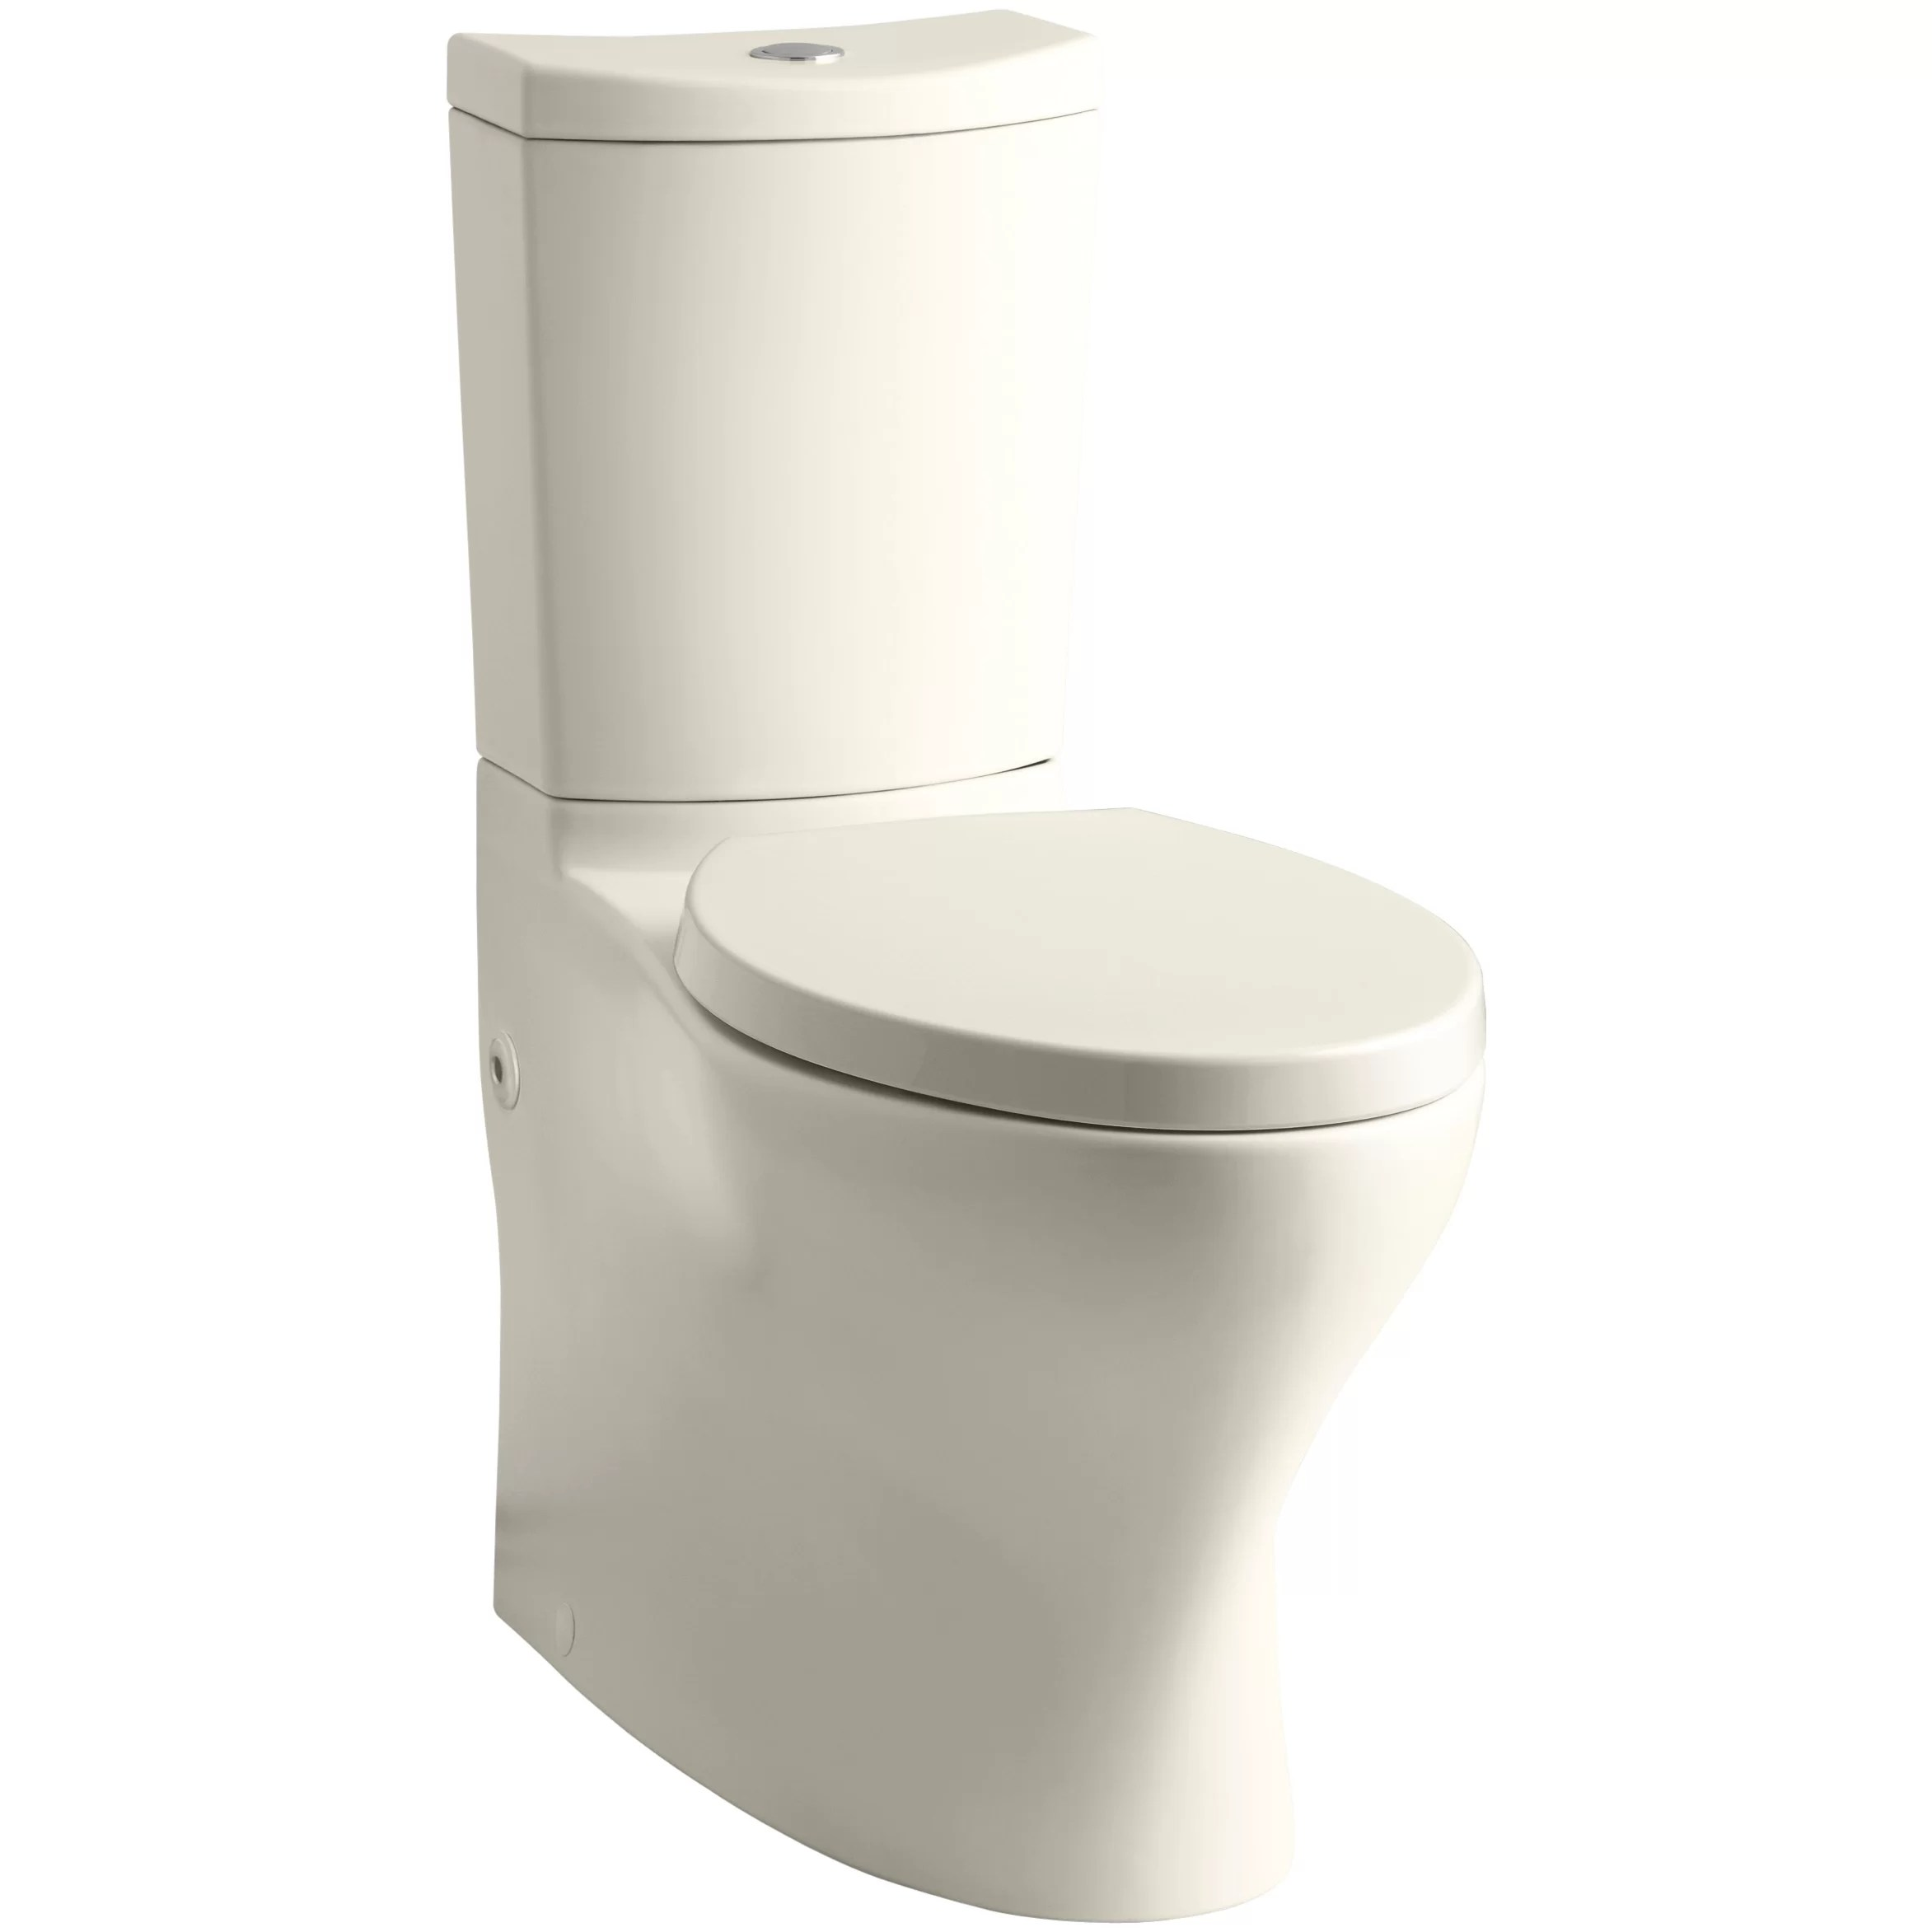 Chair Height Toilets Kohler Persuade Comfort Height 2 Piece 1 6 Gpf Elongated